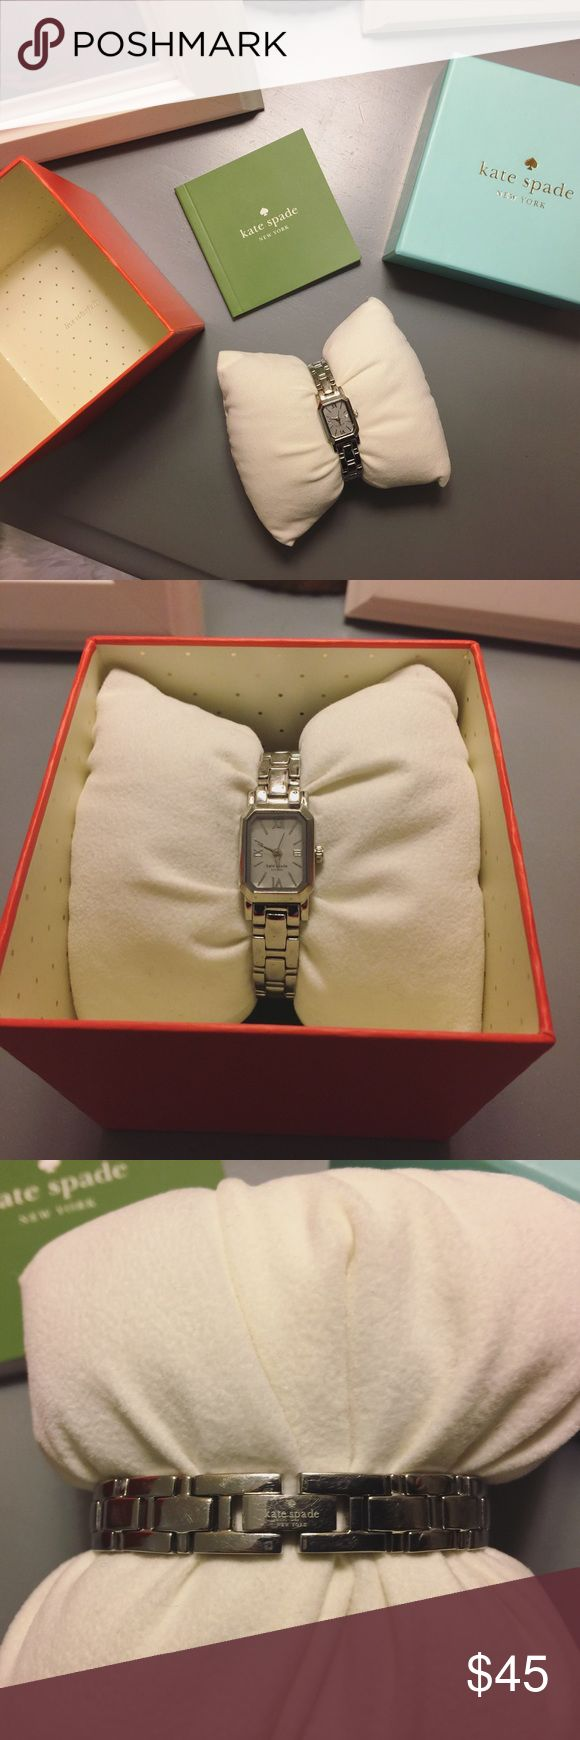 Kate Spade Watch ‼️SALE‼️ If you like this watch, buy it now as I will be raising the price to what it's worth ($80) after 12h! Gorgeous silver Kate Spade watch in great condition. Comes with original box, pillow, care card (all three in mint condition), and extra link. One of my favorite pieces of arm candy, but I'm a gold-tone type of girl these days. It does need a new battery as it's been hanging out in its box - should be $8 at the grocery store, price reflects the inconvenience! $40 w…